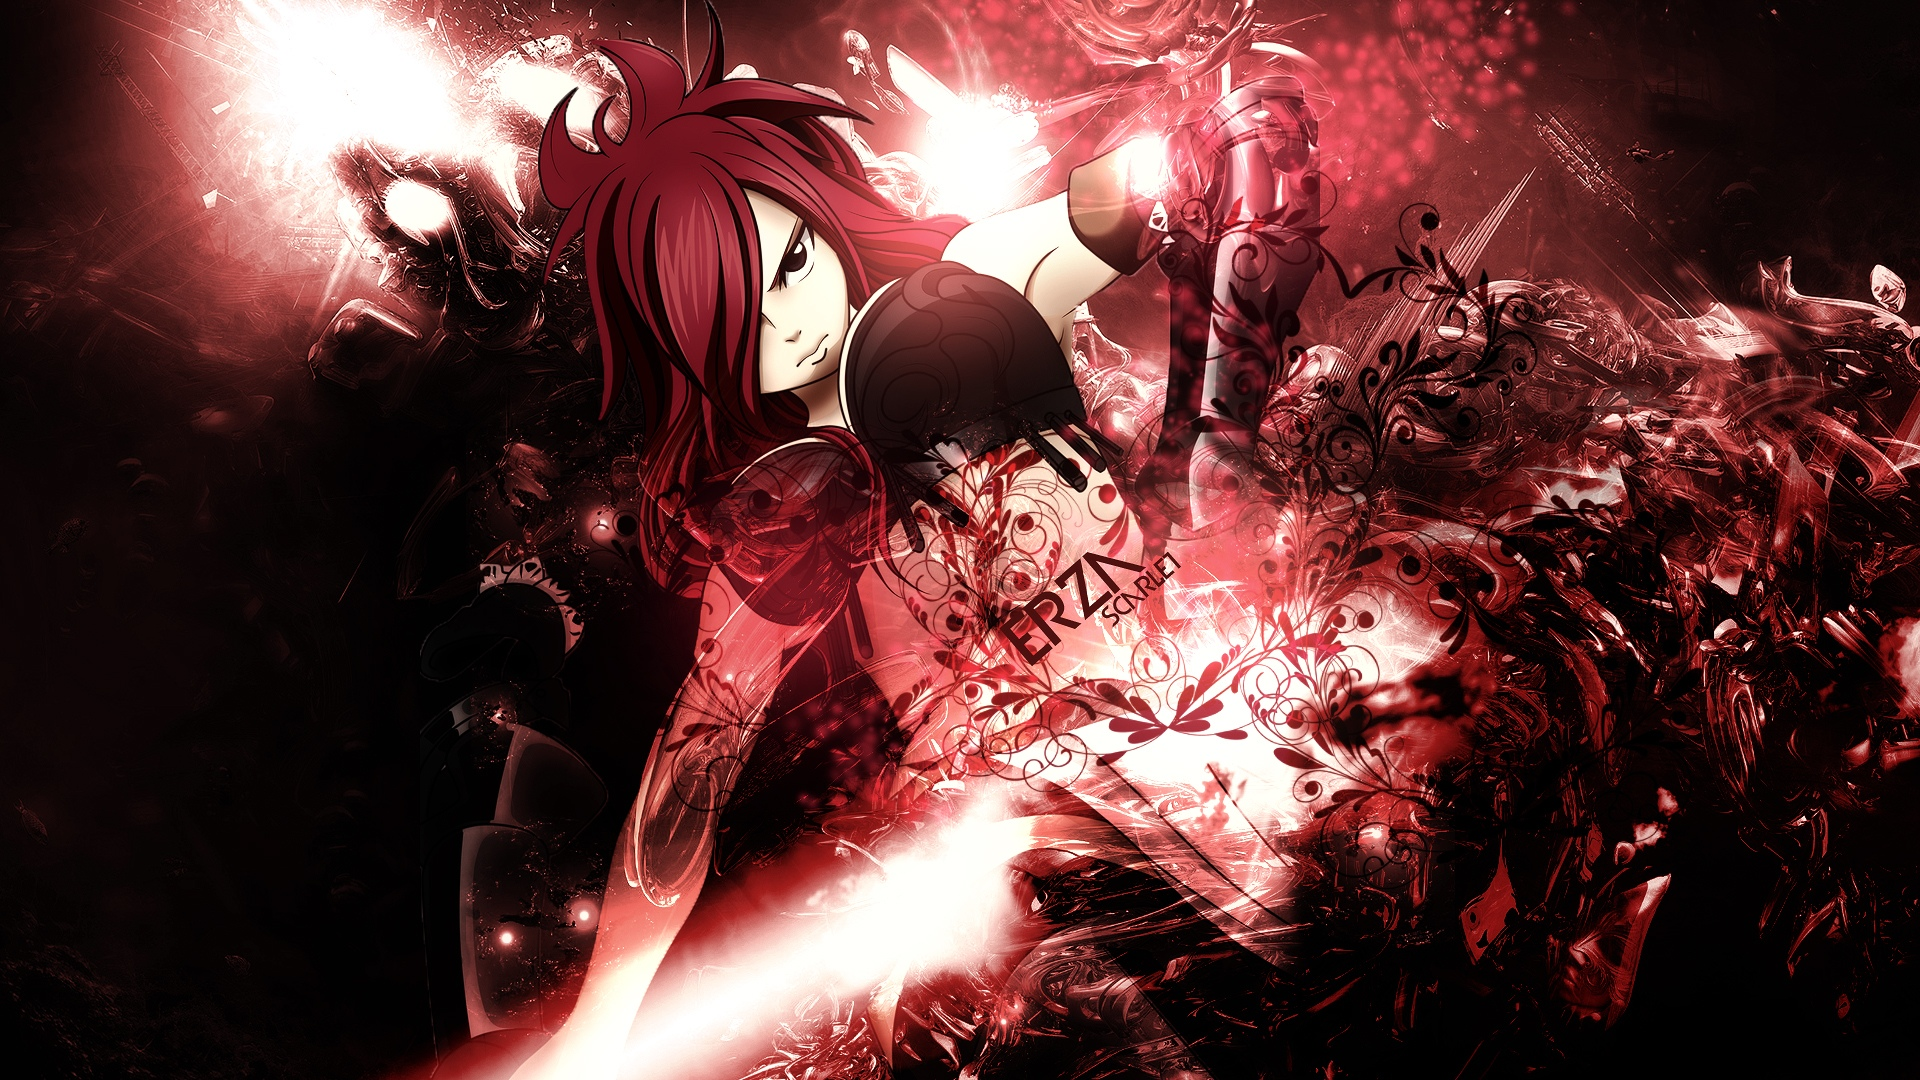 Fairy tail hd wallpaper zerochan anime image board voltagebd Image collections